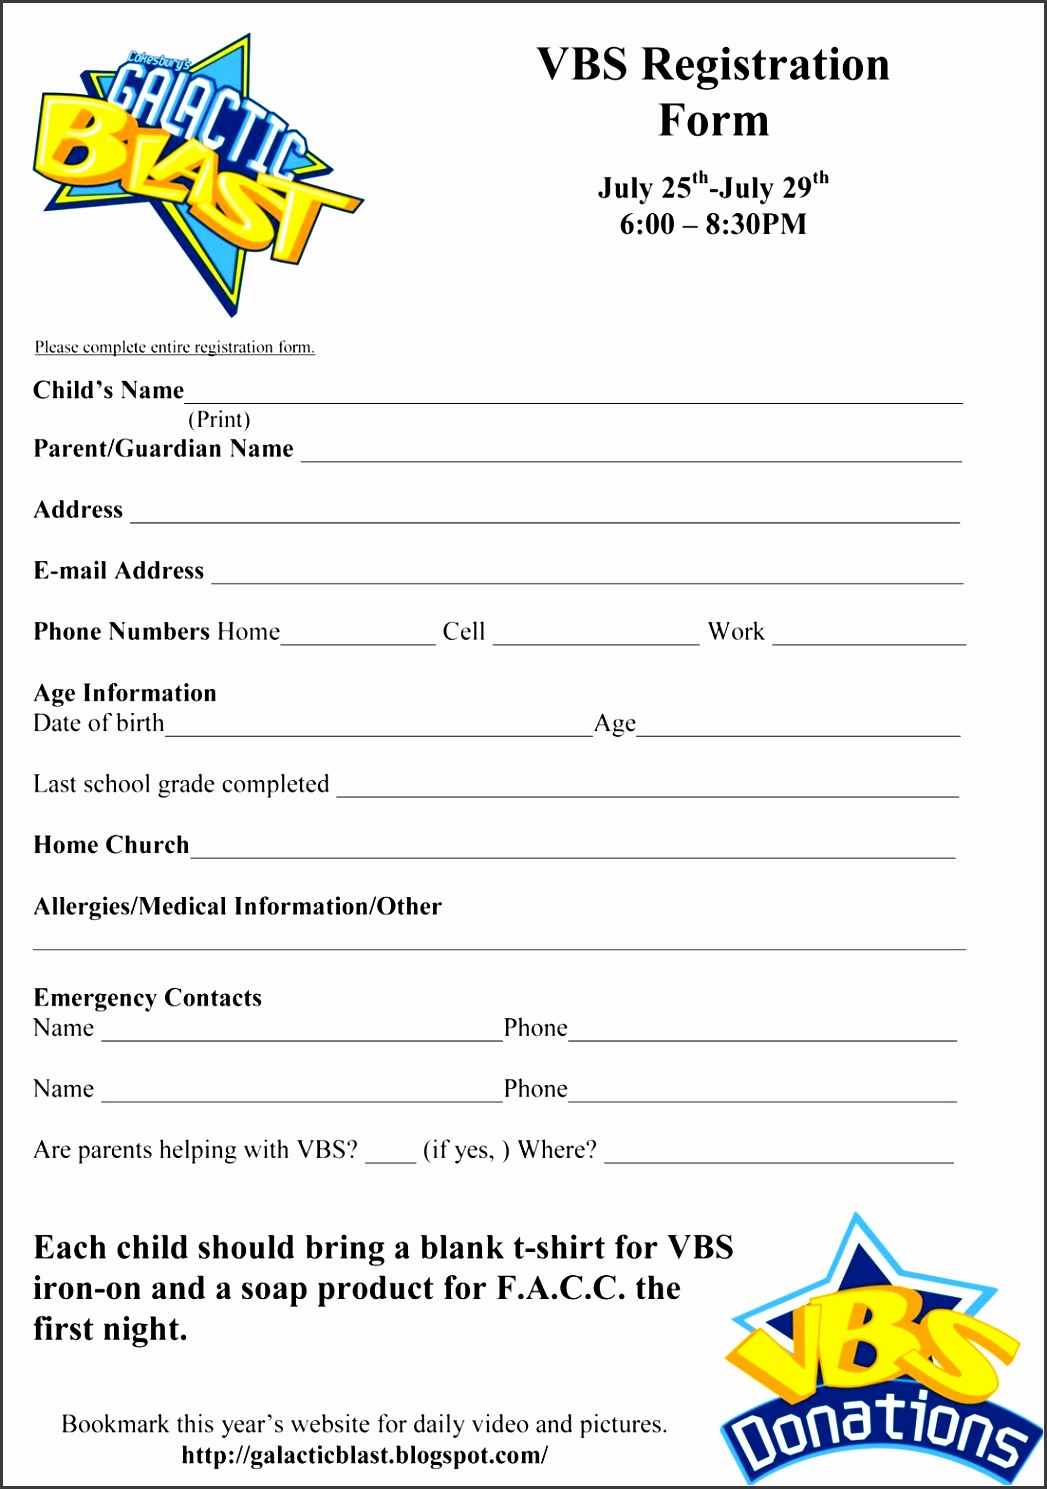 Free Vbs Registration Form Template Vbs Free Sunday School Free Vbs Registration Form Template Vbs Free Sunday School Registration Form Template Beautiful